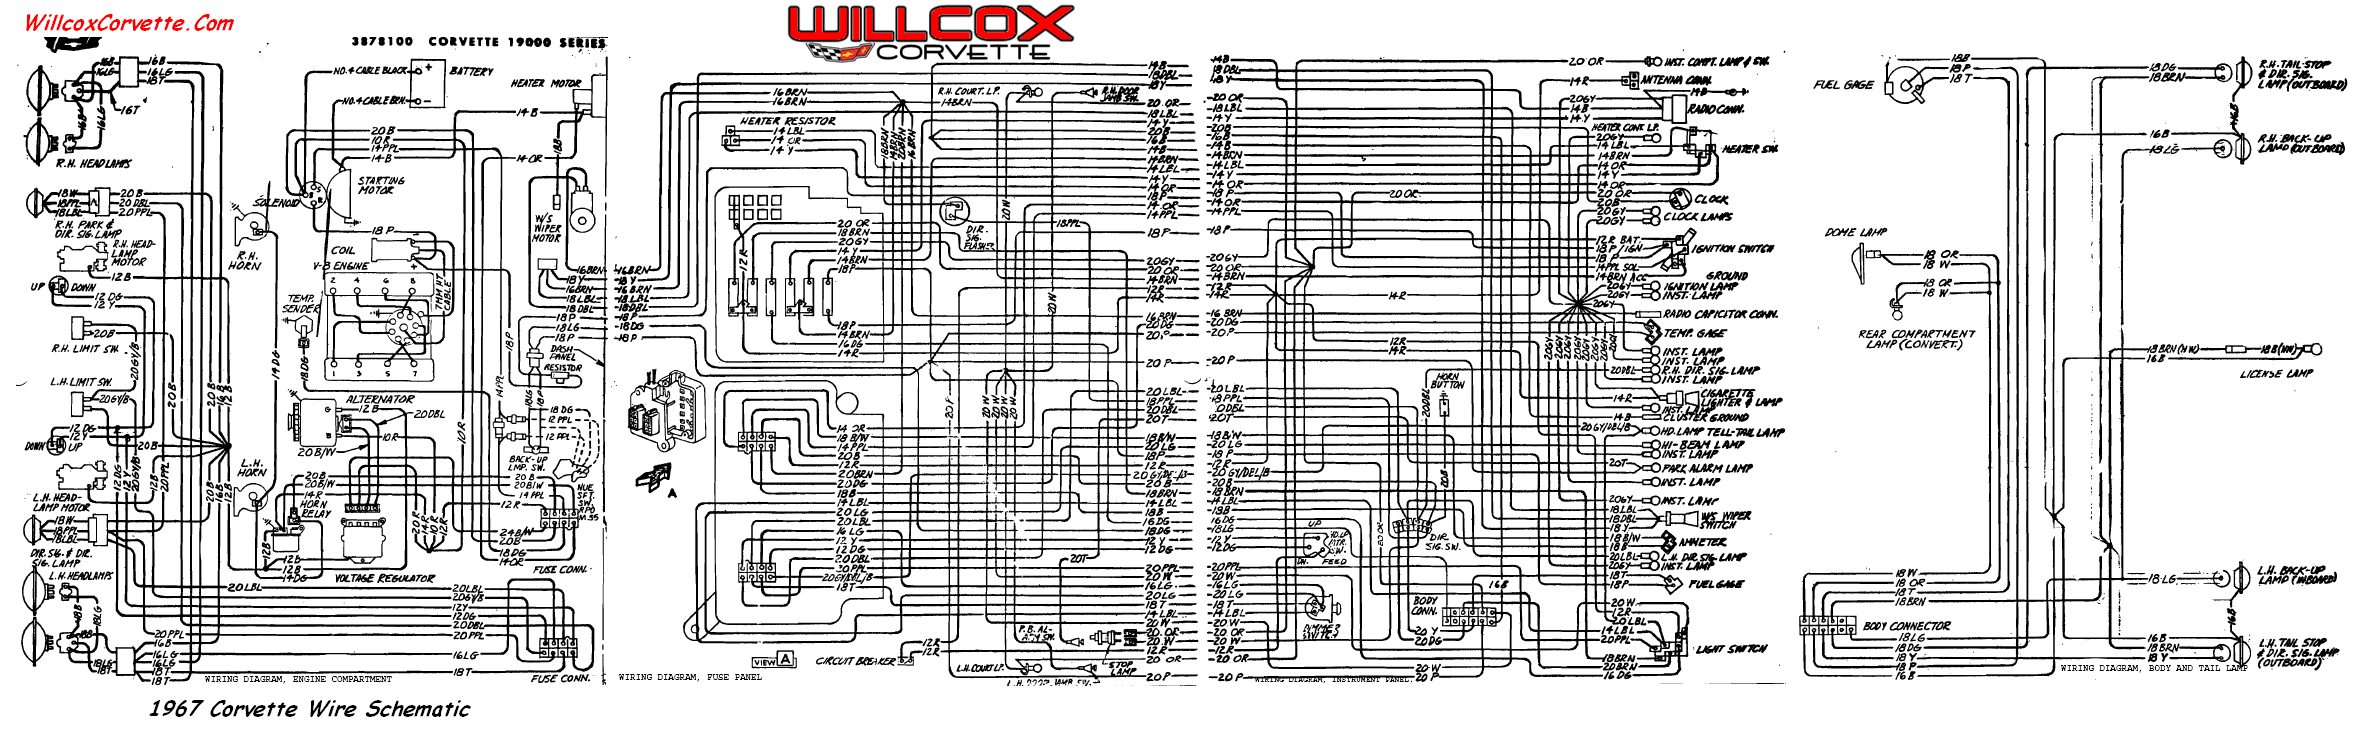 67 wire schematic for tracing wires 1973 corvette wiring schematics on 1973 download wirning diagrams 1963 corvette wiring diagram at gsmx.co